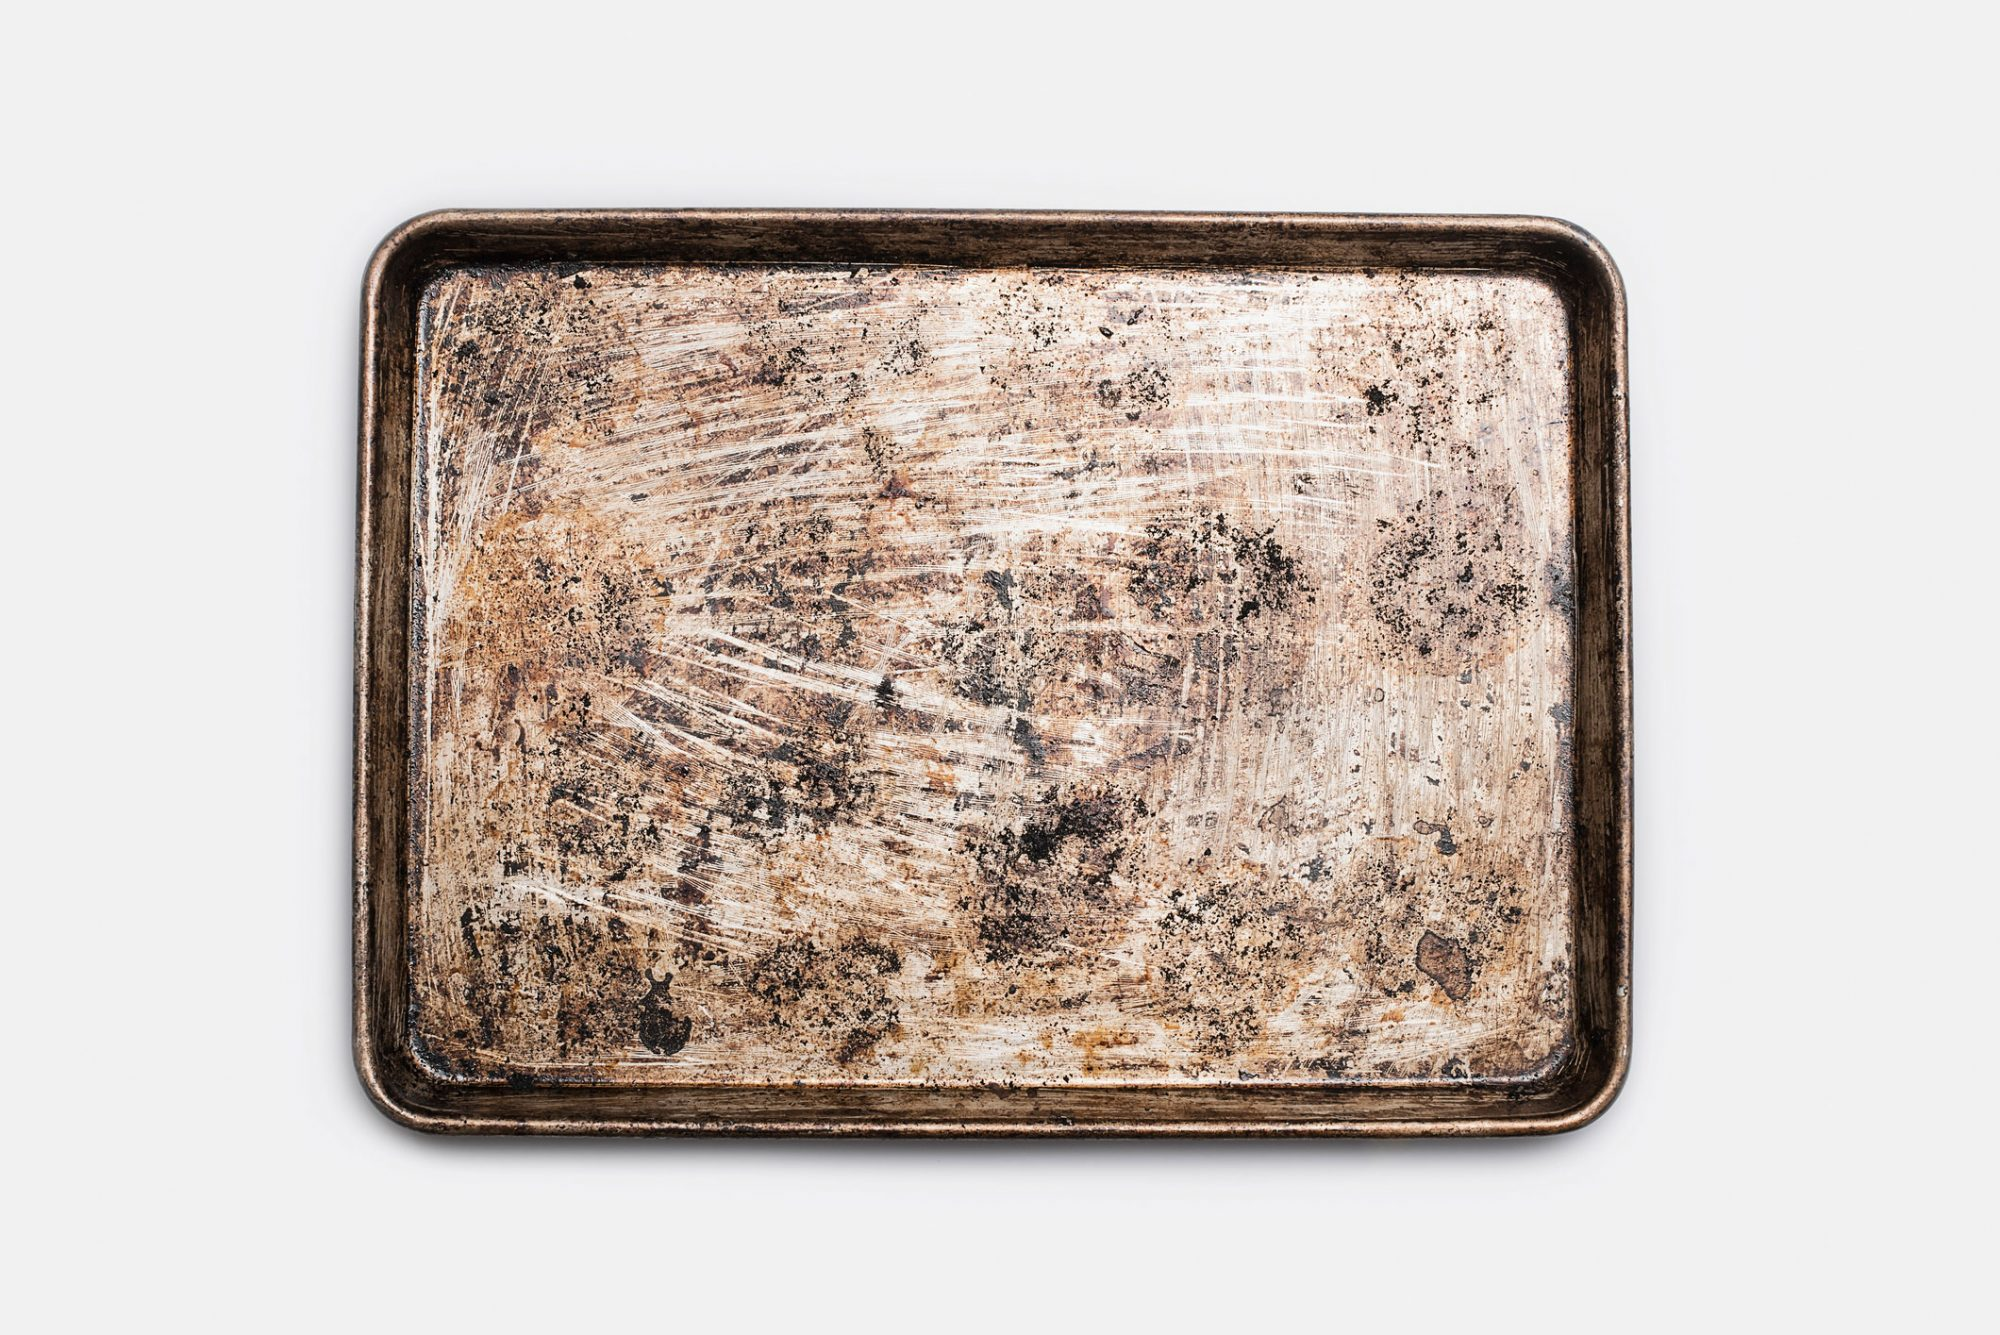 Here's How To Make a Gross Cookie Sheet Look Brand New